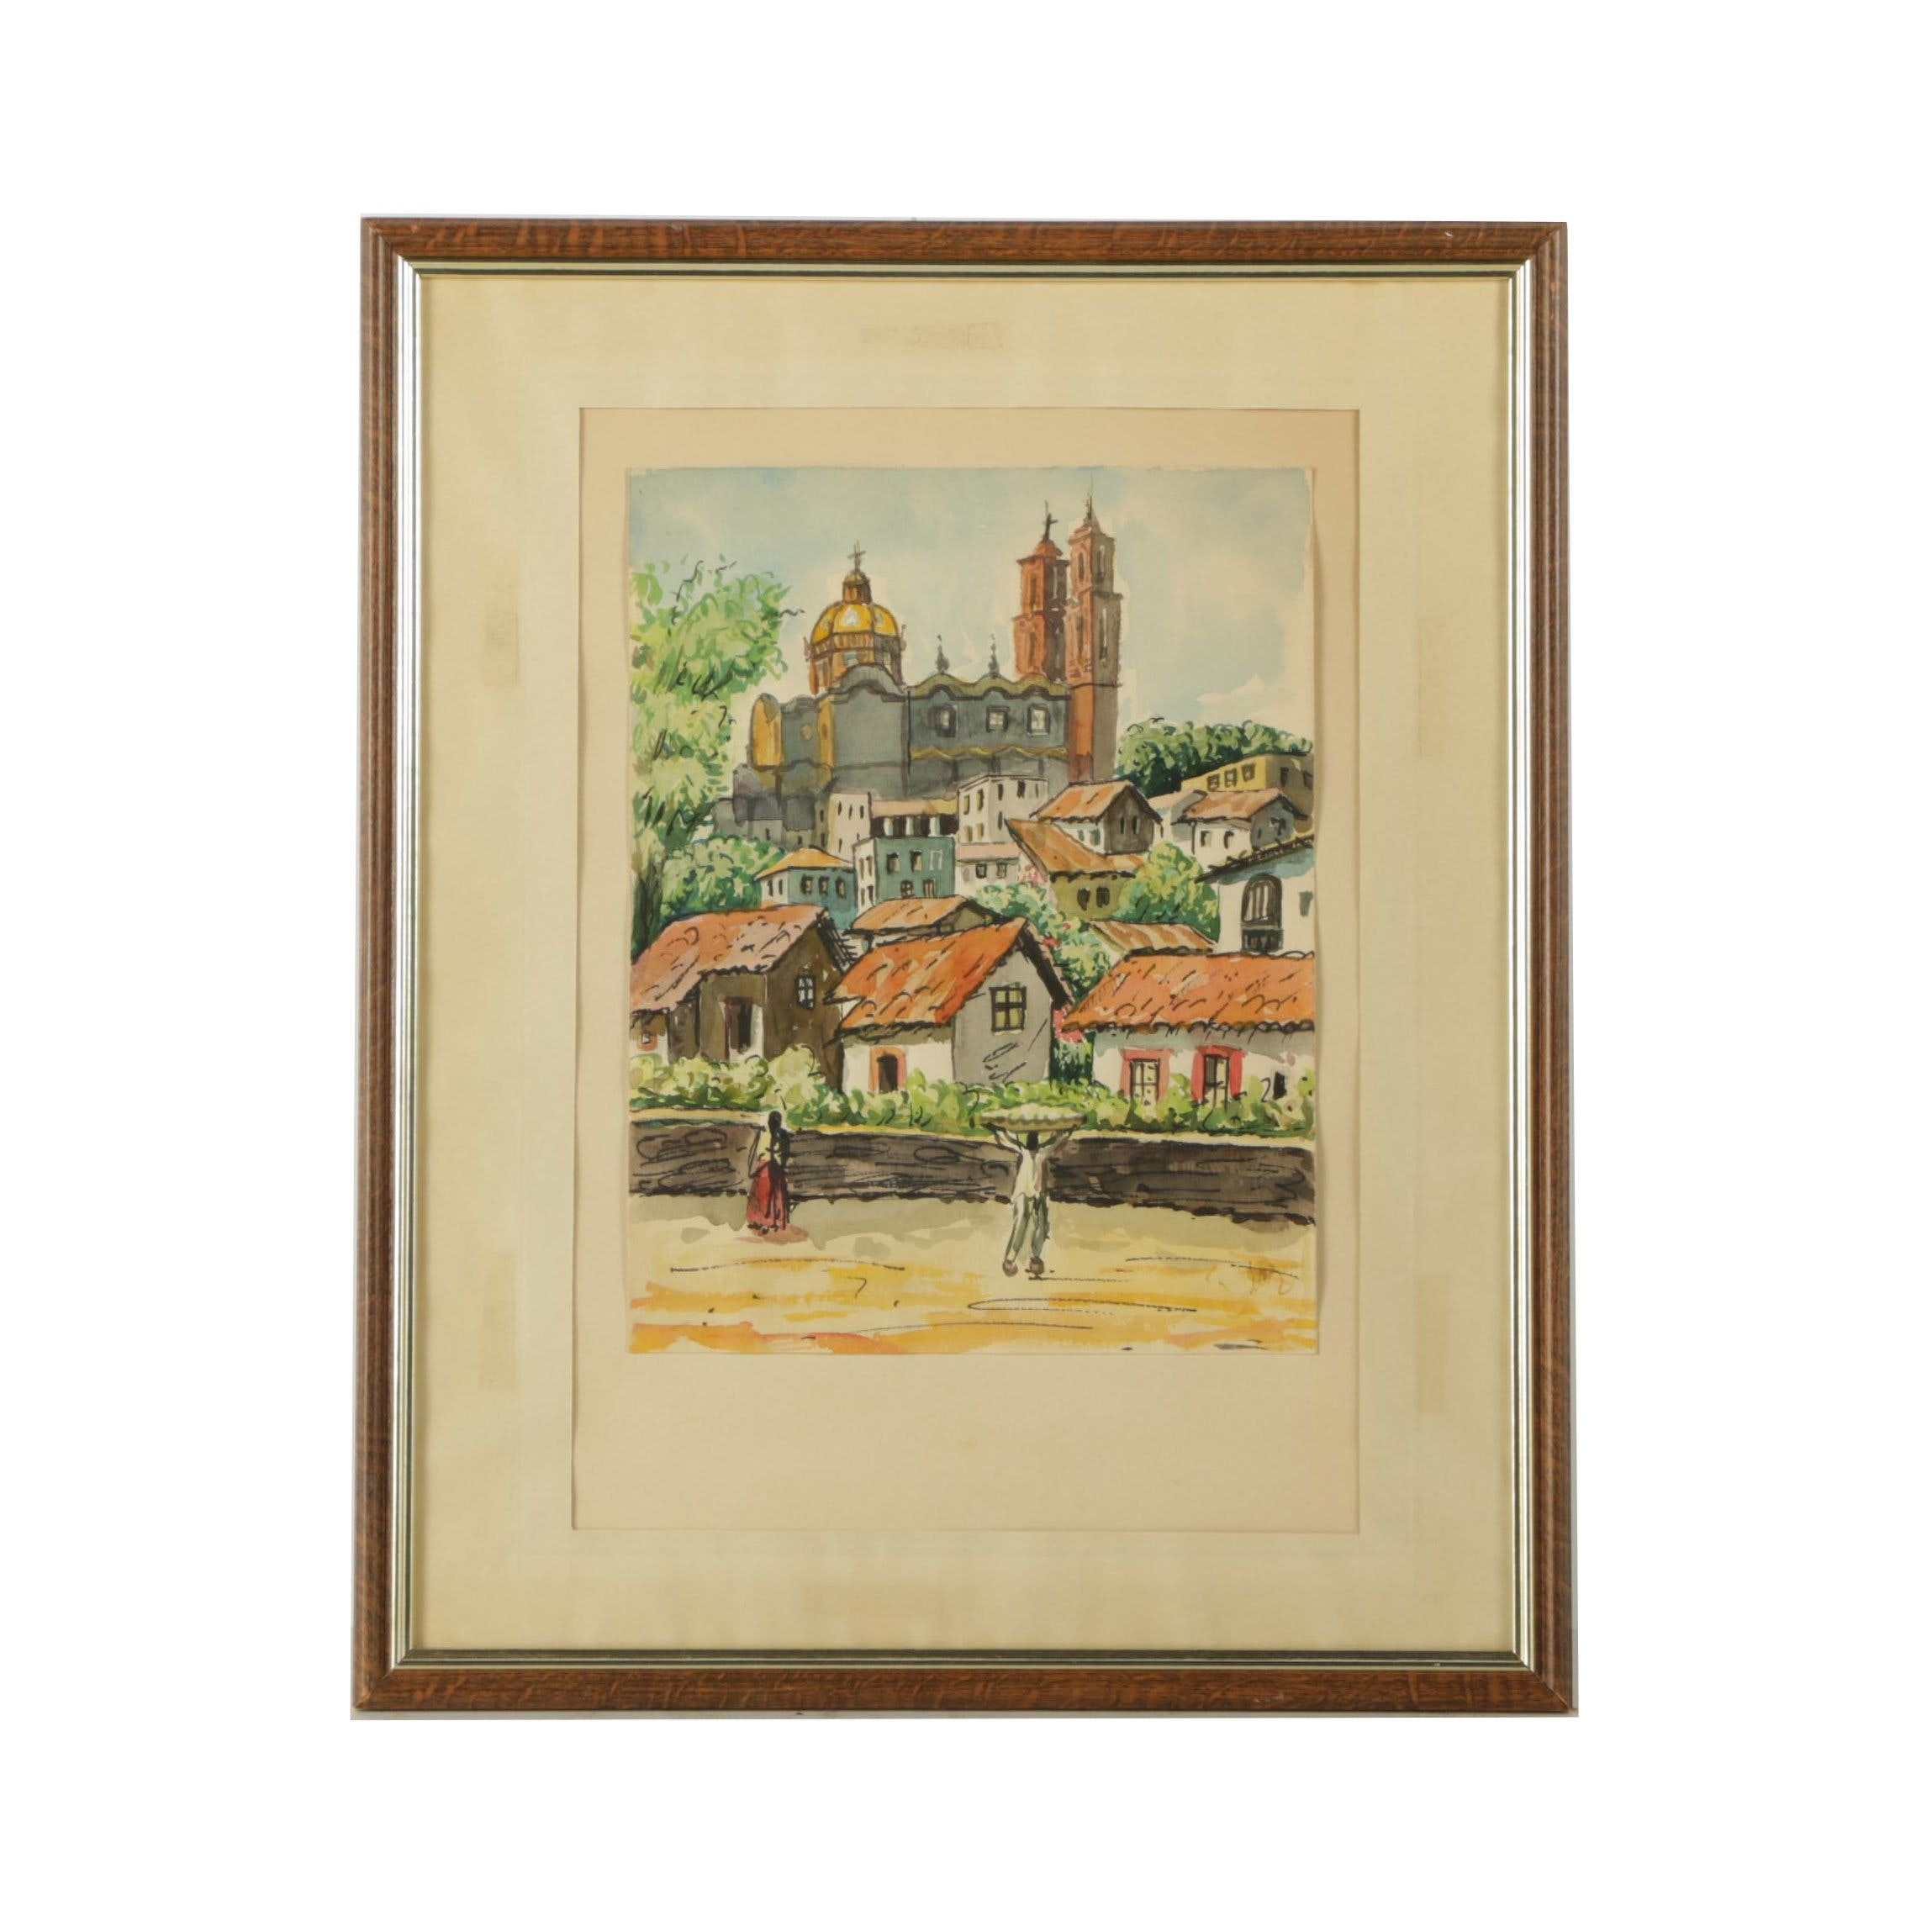 Diaz Watercolor Painting Of A Town Ebth